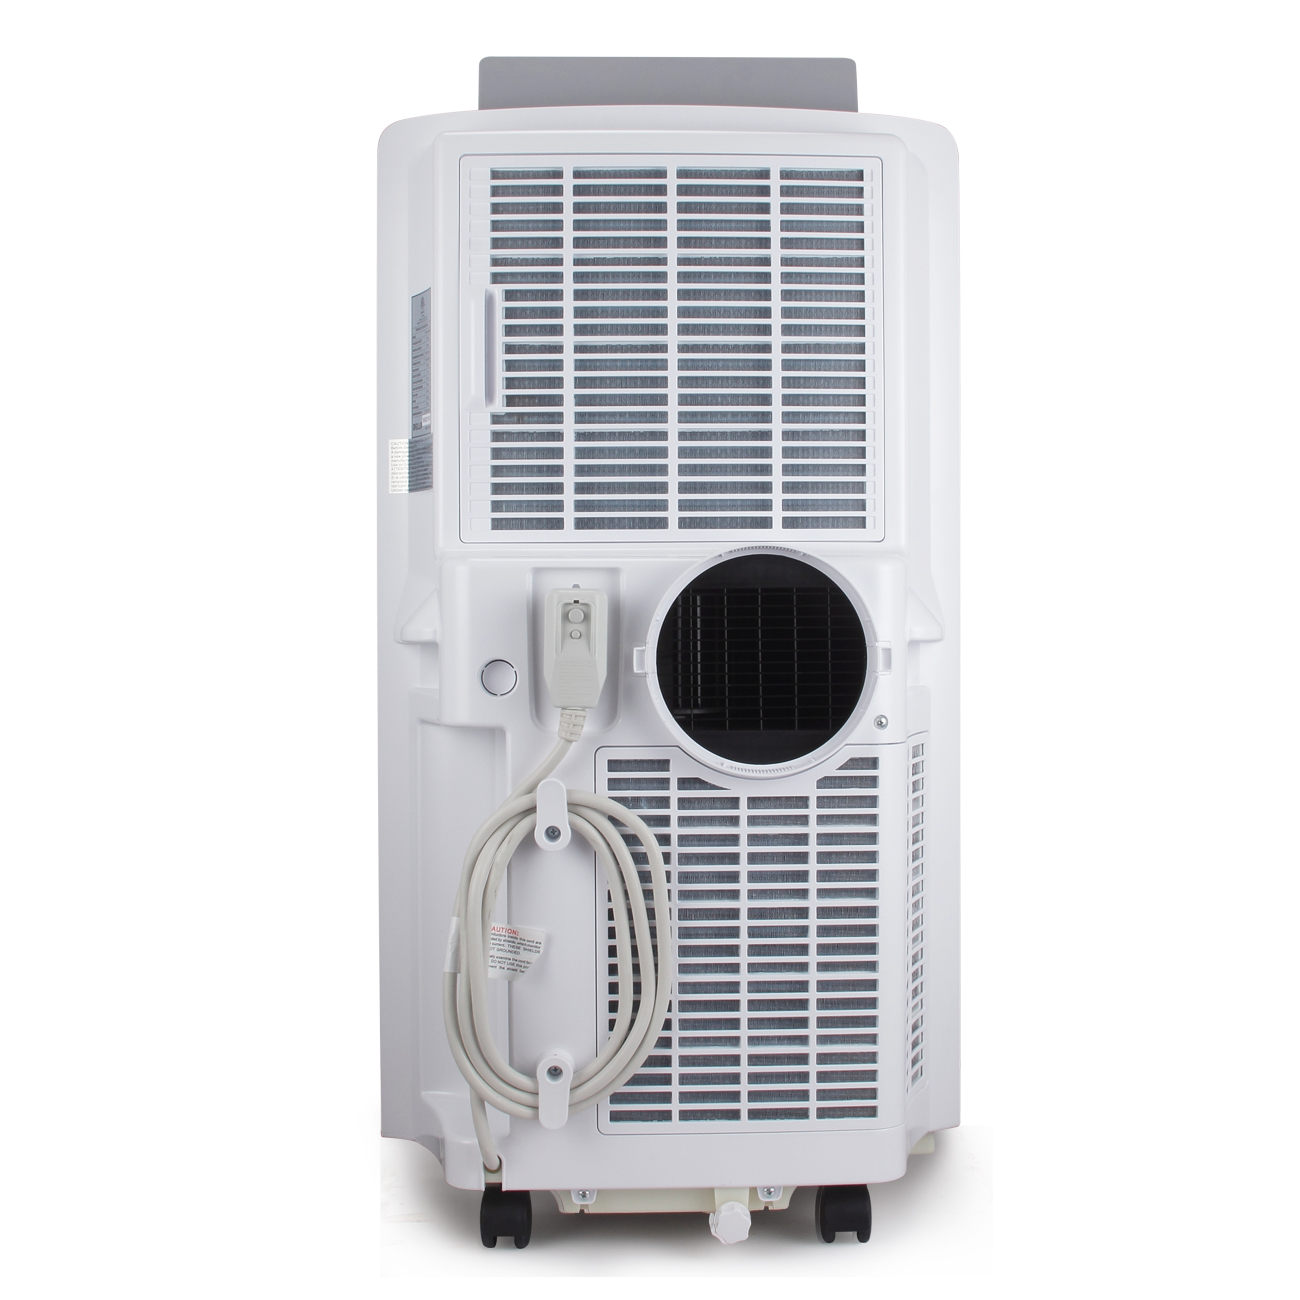 #576974 14 000 BTU Portable Air Conditioner Cooling & Heating W  Brand New 12151 Heater Air Conditioner Portable images with 1300x1300 px on helpvideos.info - Air Conditioners, Air Coolers and more